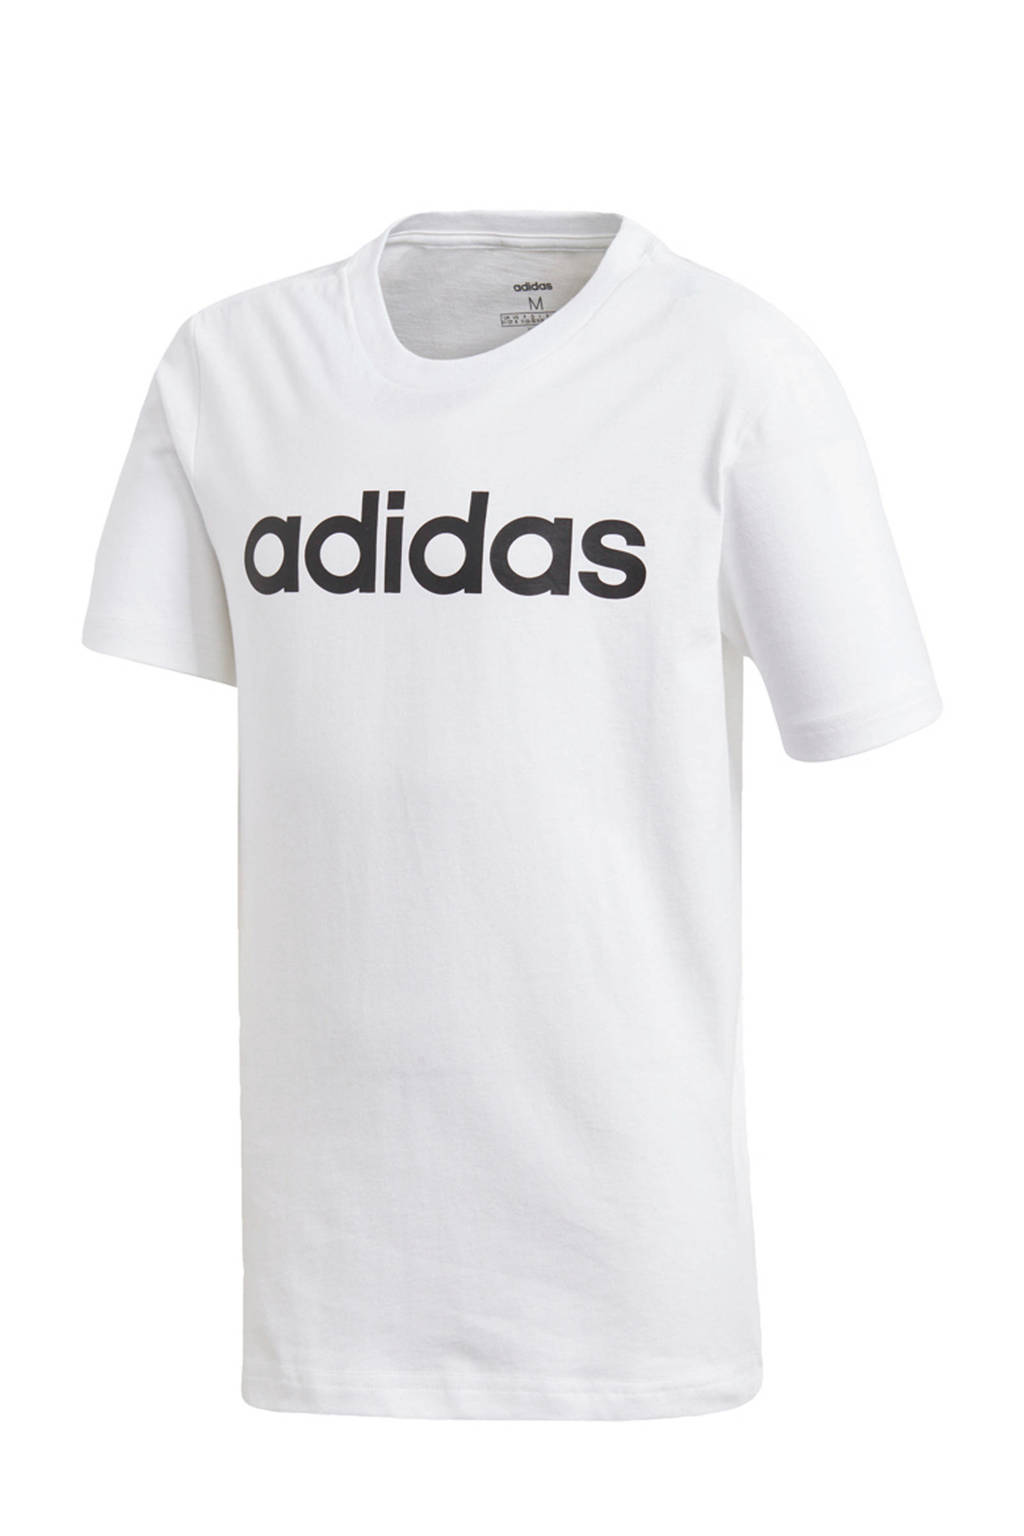 adidas Performance   sport T-shirt, Wit/zwart